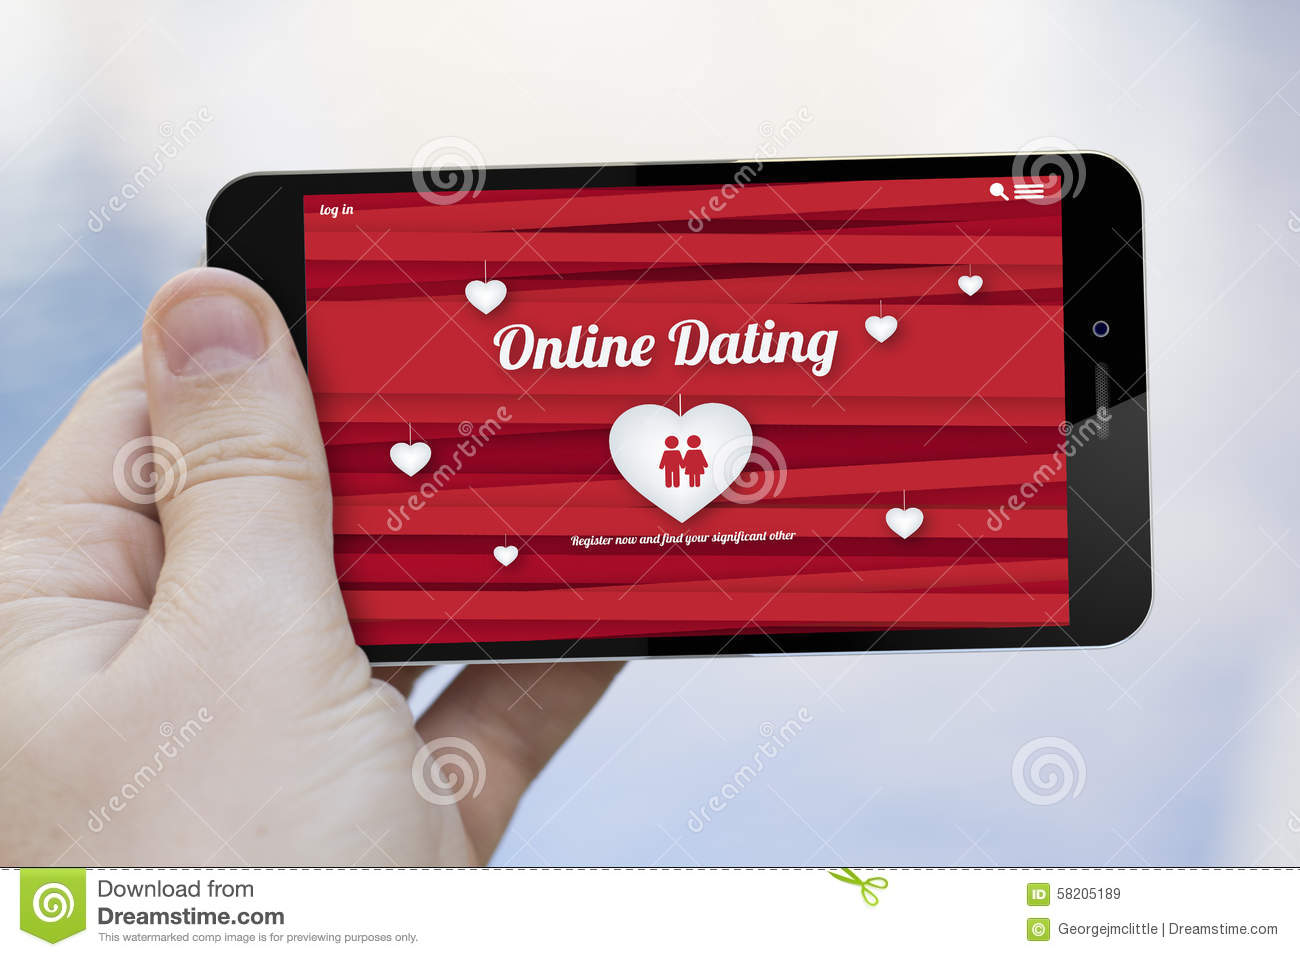 Online dating phone sex